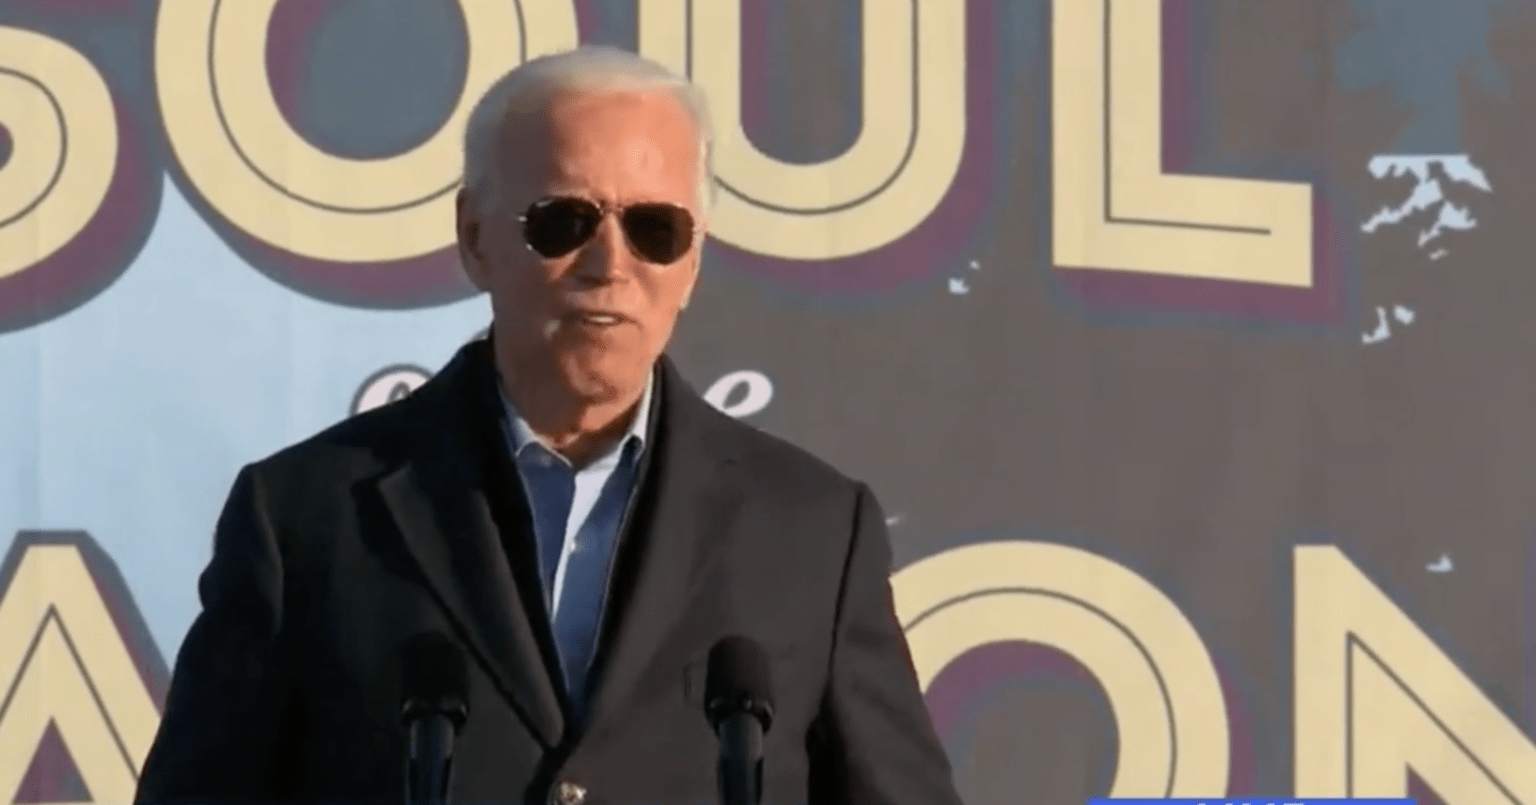 Biden has mini-meltdown: Calls group of Trump supporters 'ugly folks'